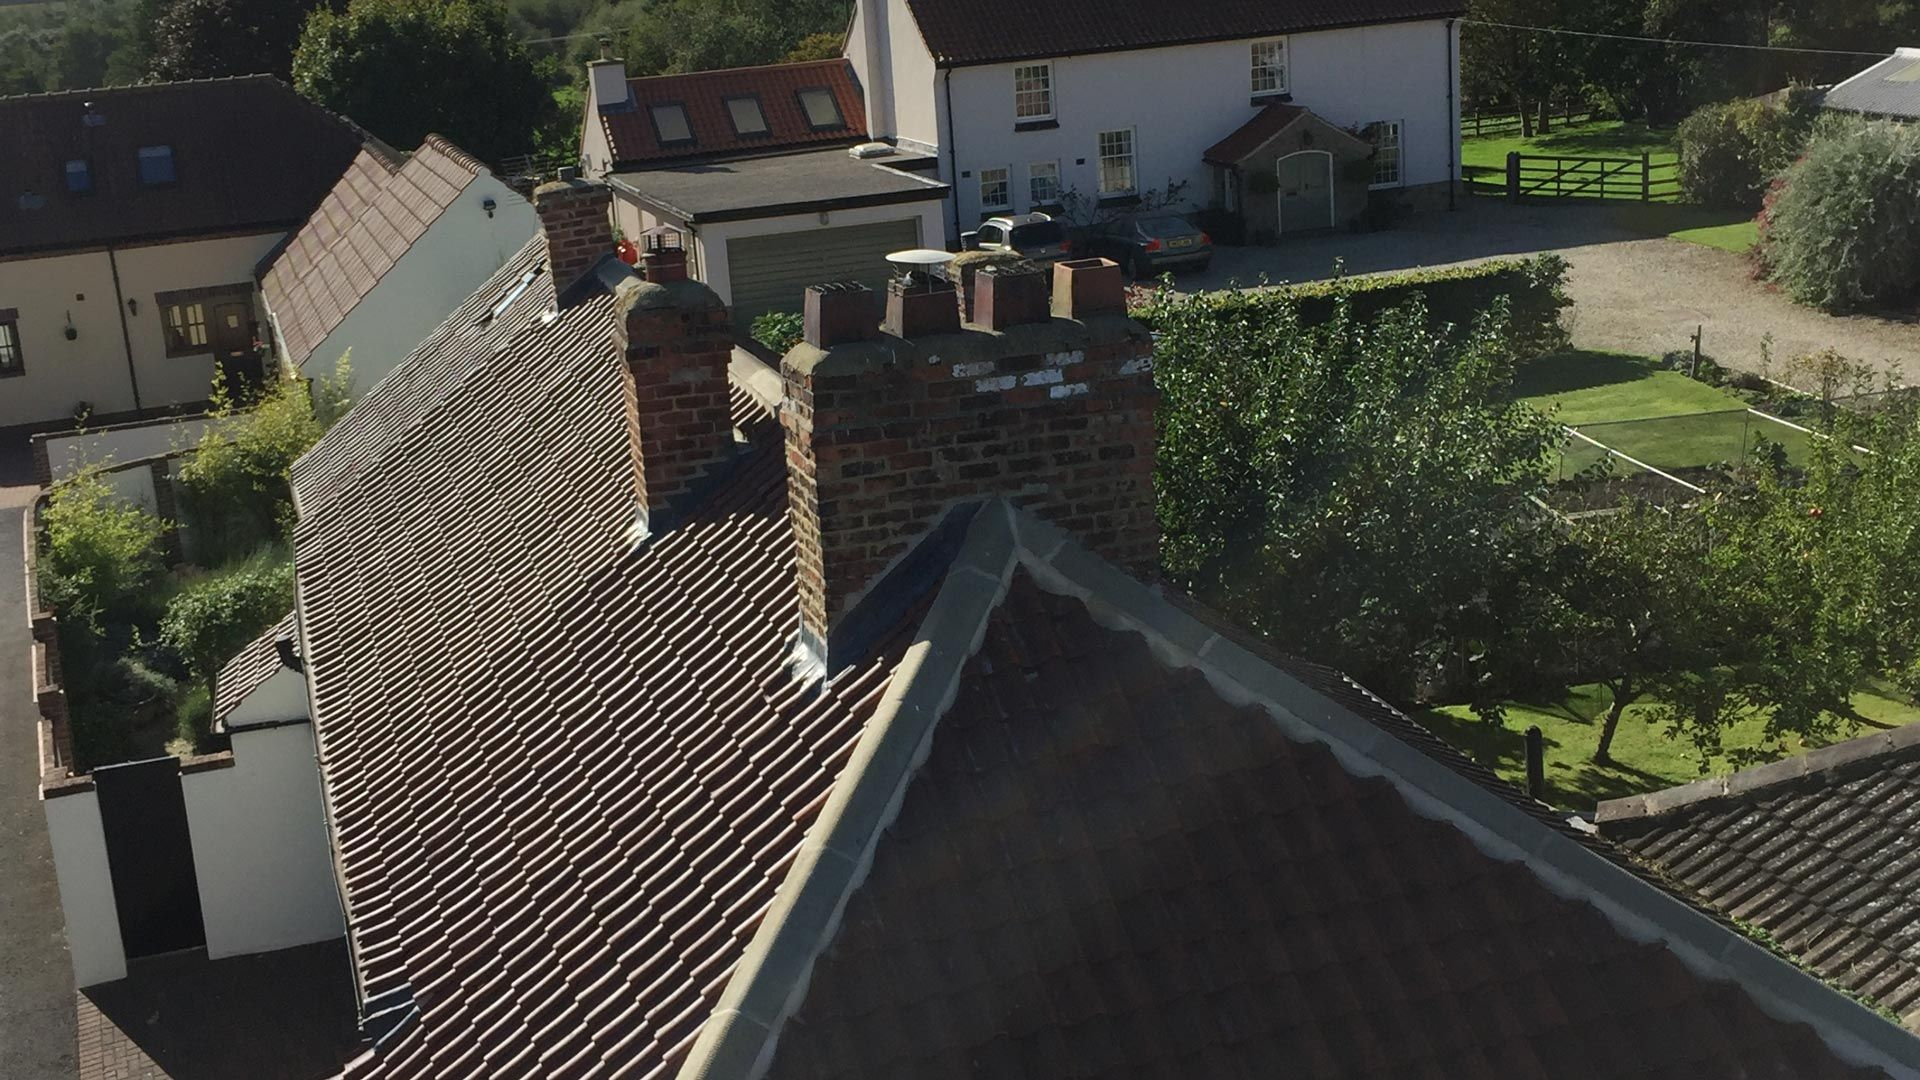 Residential roofing work carried out by our team